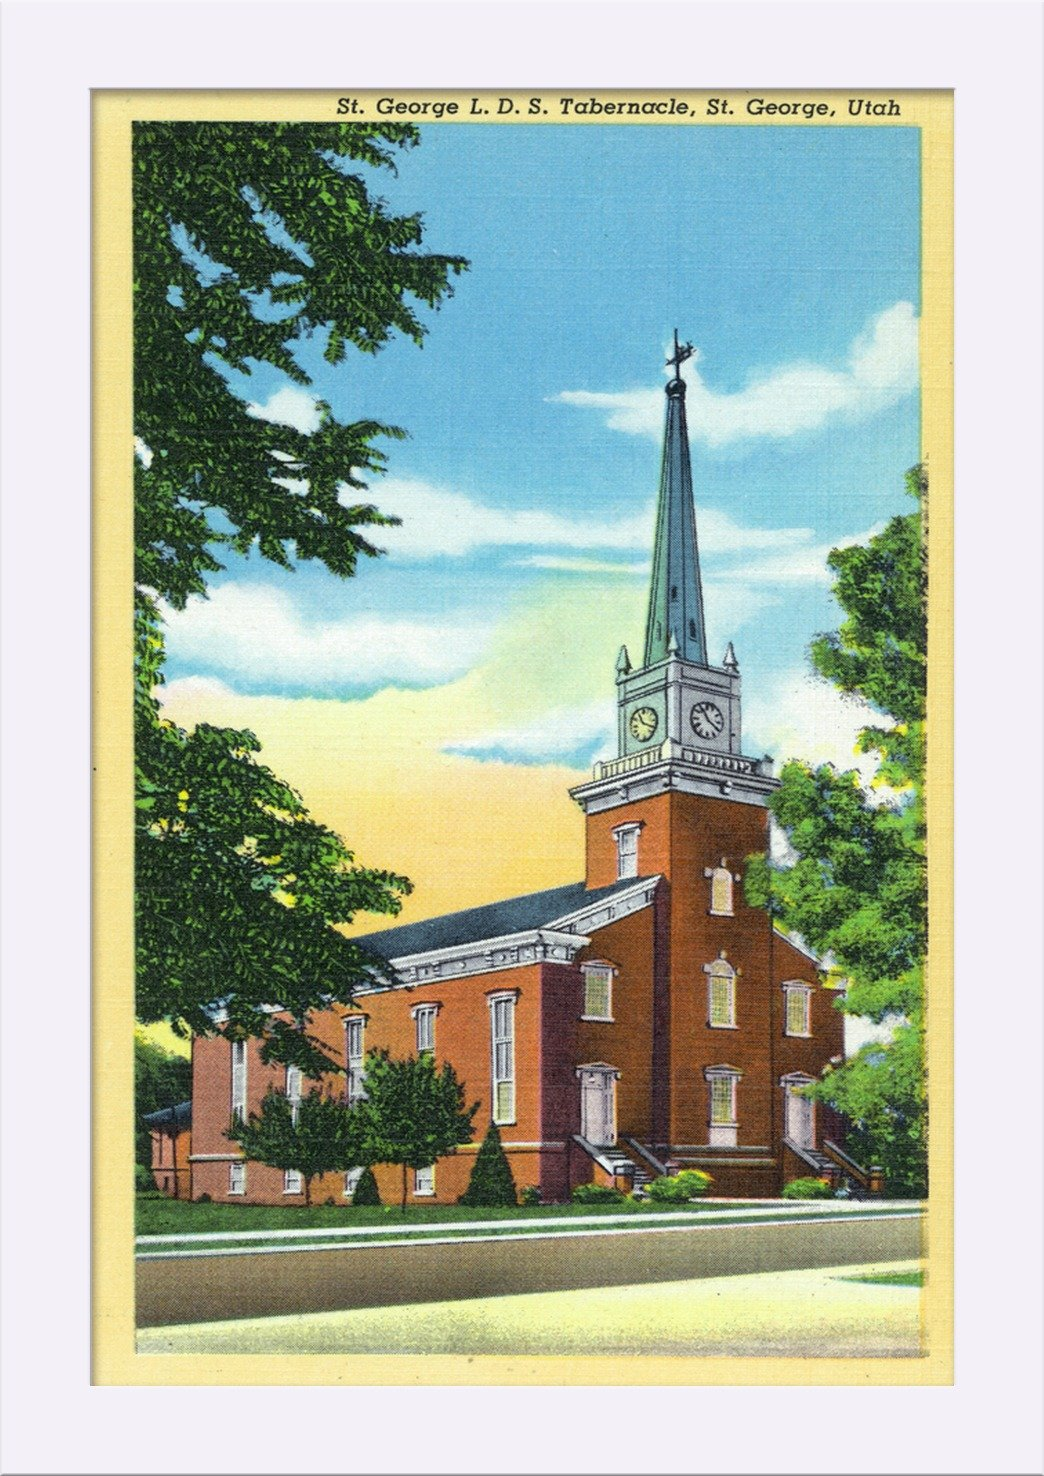 Amazon.com: St. George, Utah - Exterior View of the St. George L.D.S. Tabernacle (11 1/4x18 Giclee Art Print, Gallery Framed, White Wood): Posters & Prints